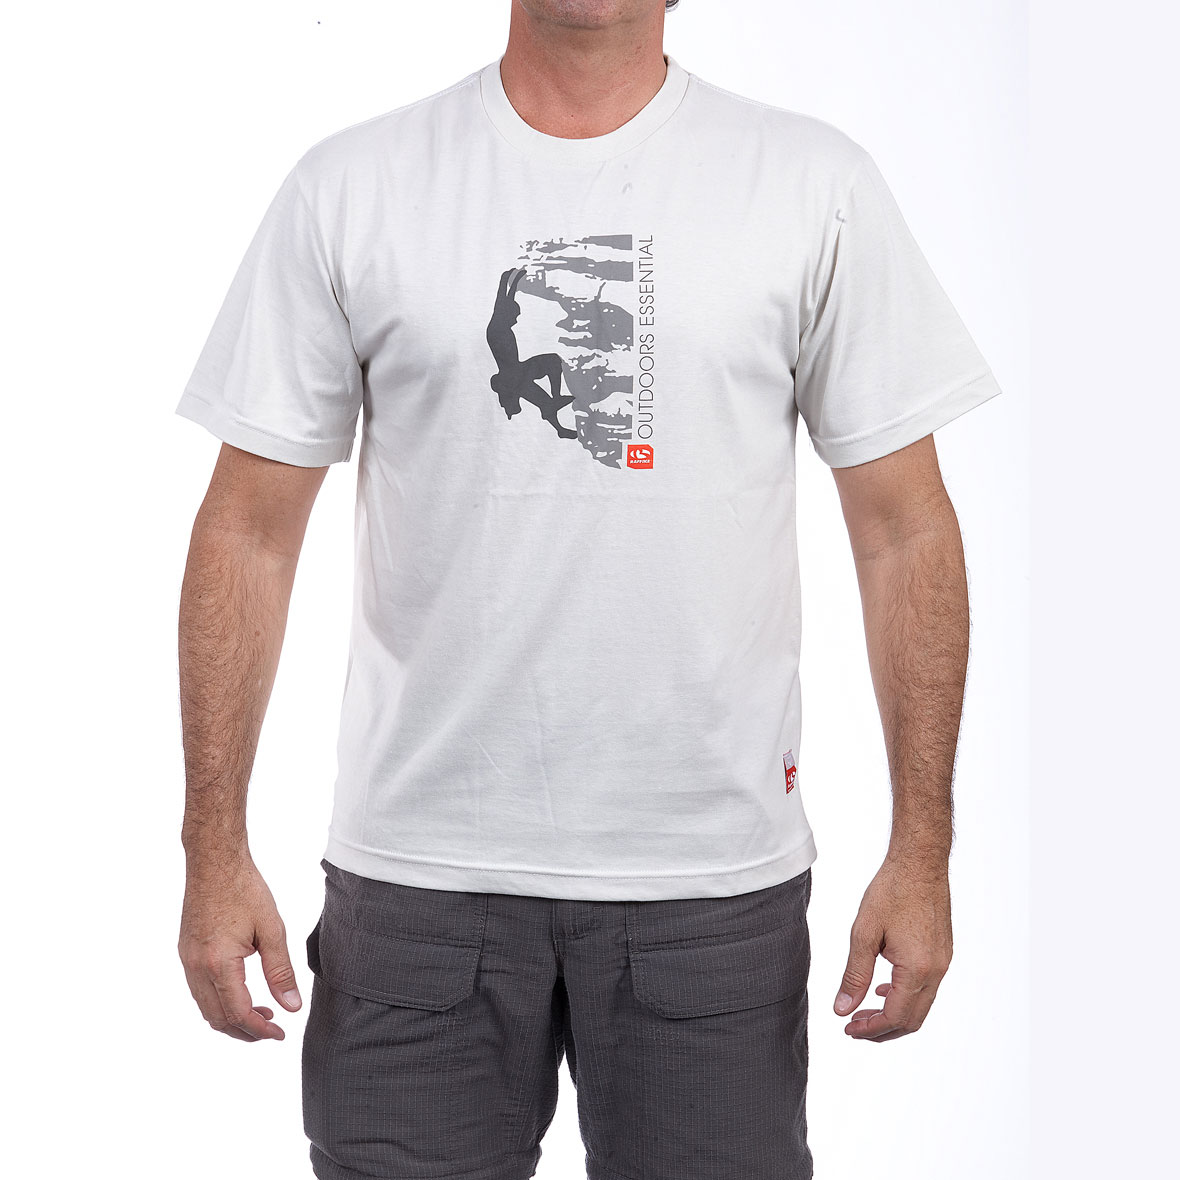 MG 8760 5RE20151140M Adventure T Shirt Escalada Blanco  - Adventure T-Shirts